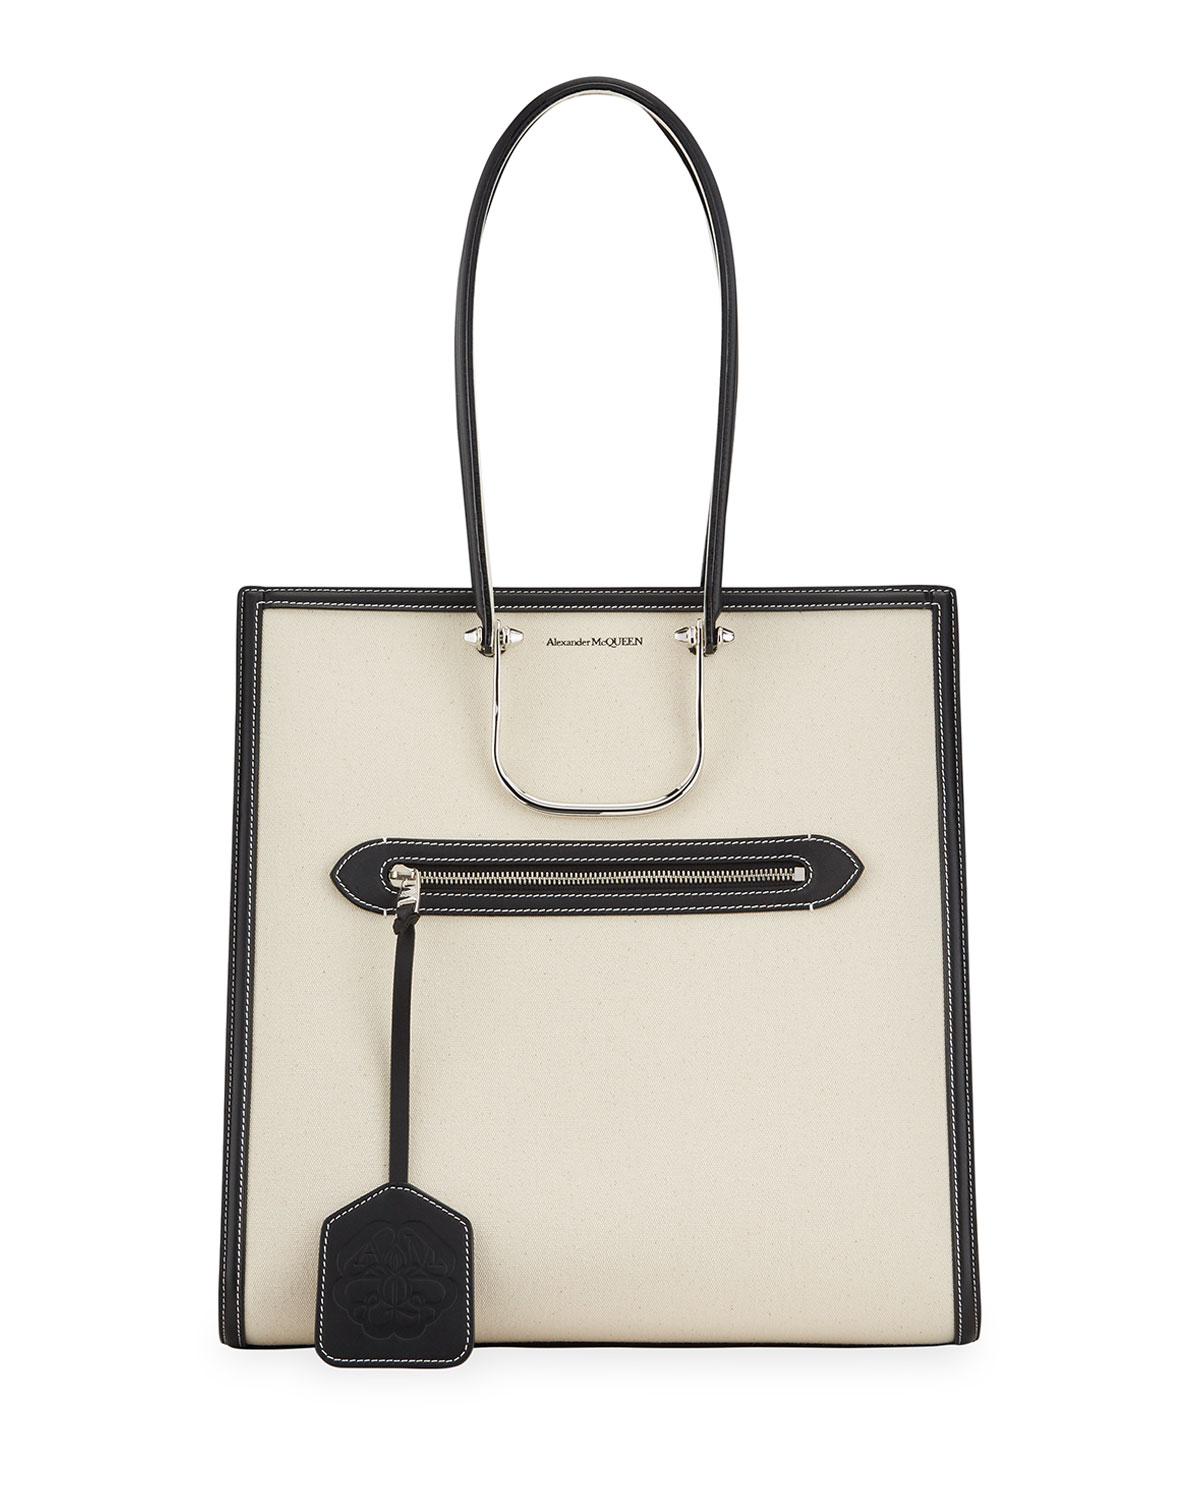 Alexander Mcqueen Leathers THE TALL STORY CANVAS/LEATHER TOTE BAG, WHITE